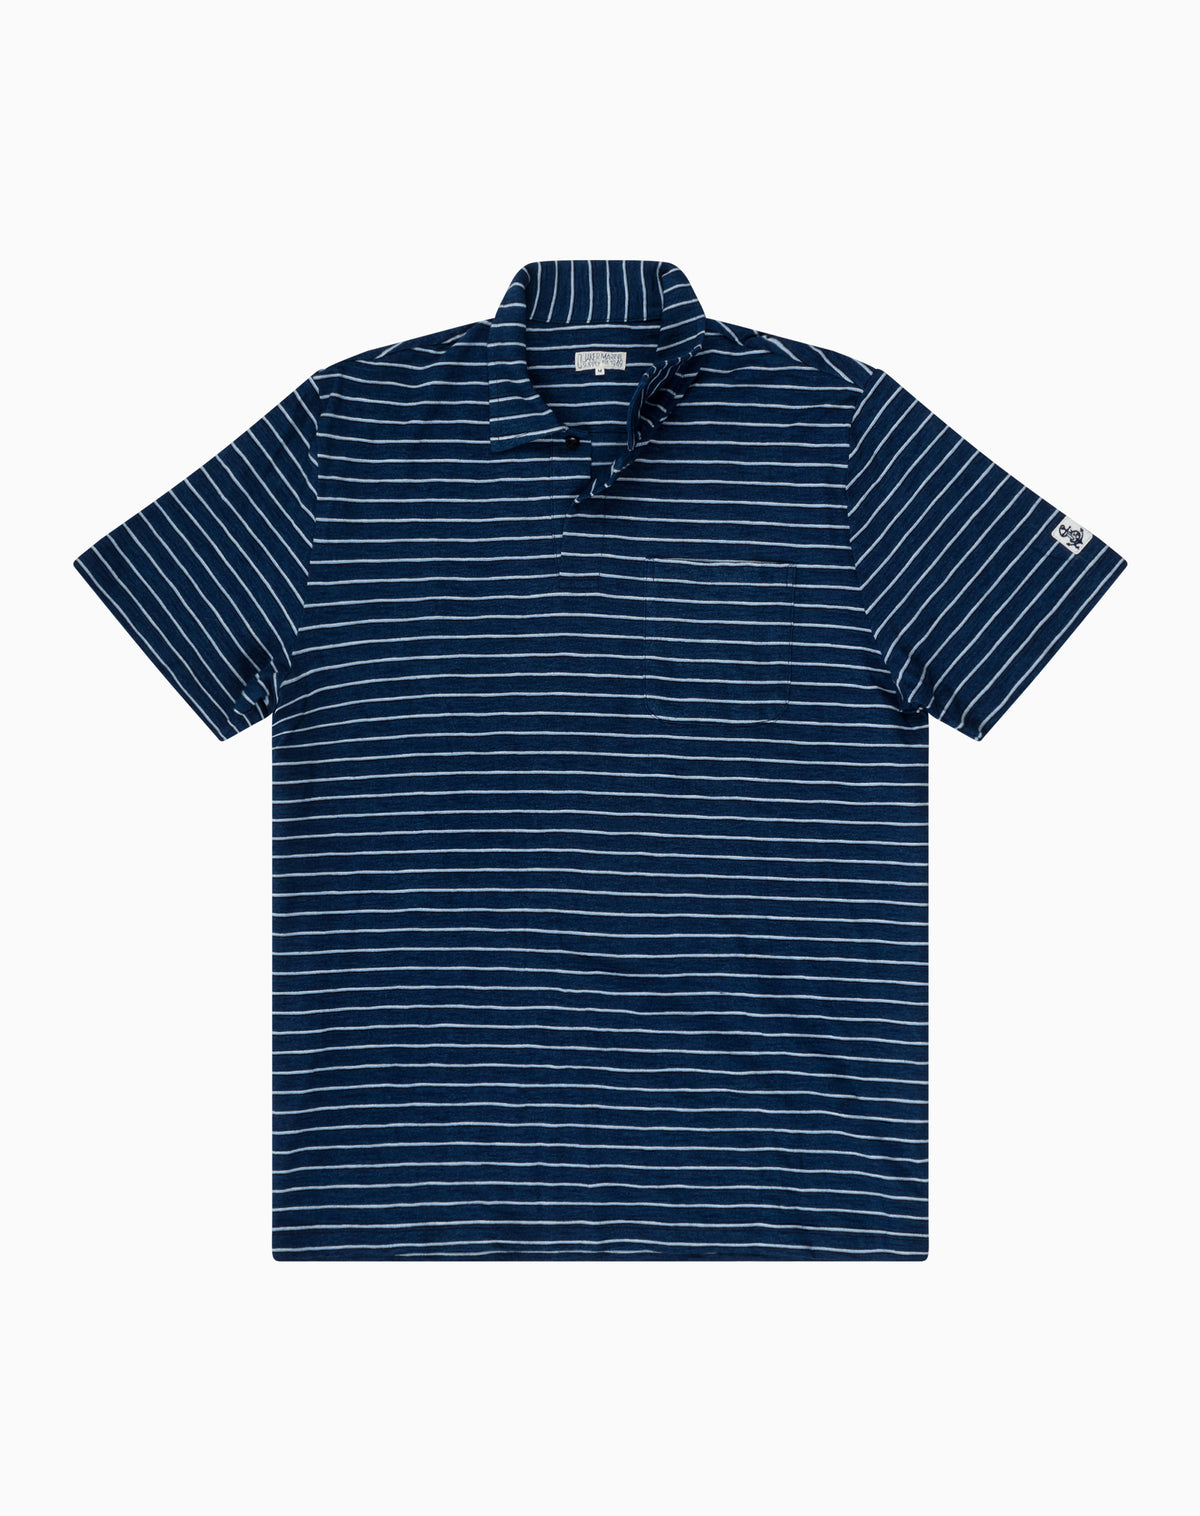 Indigo Polo in Dark Wash Stripe